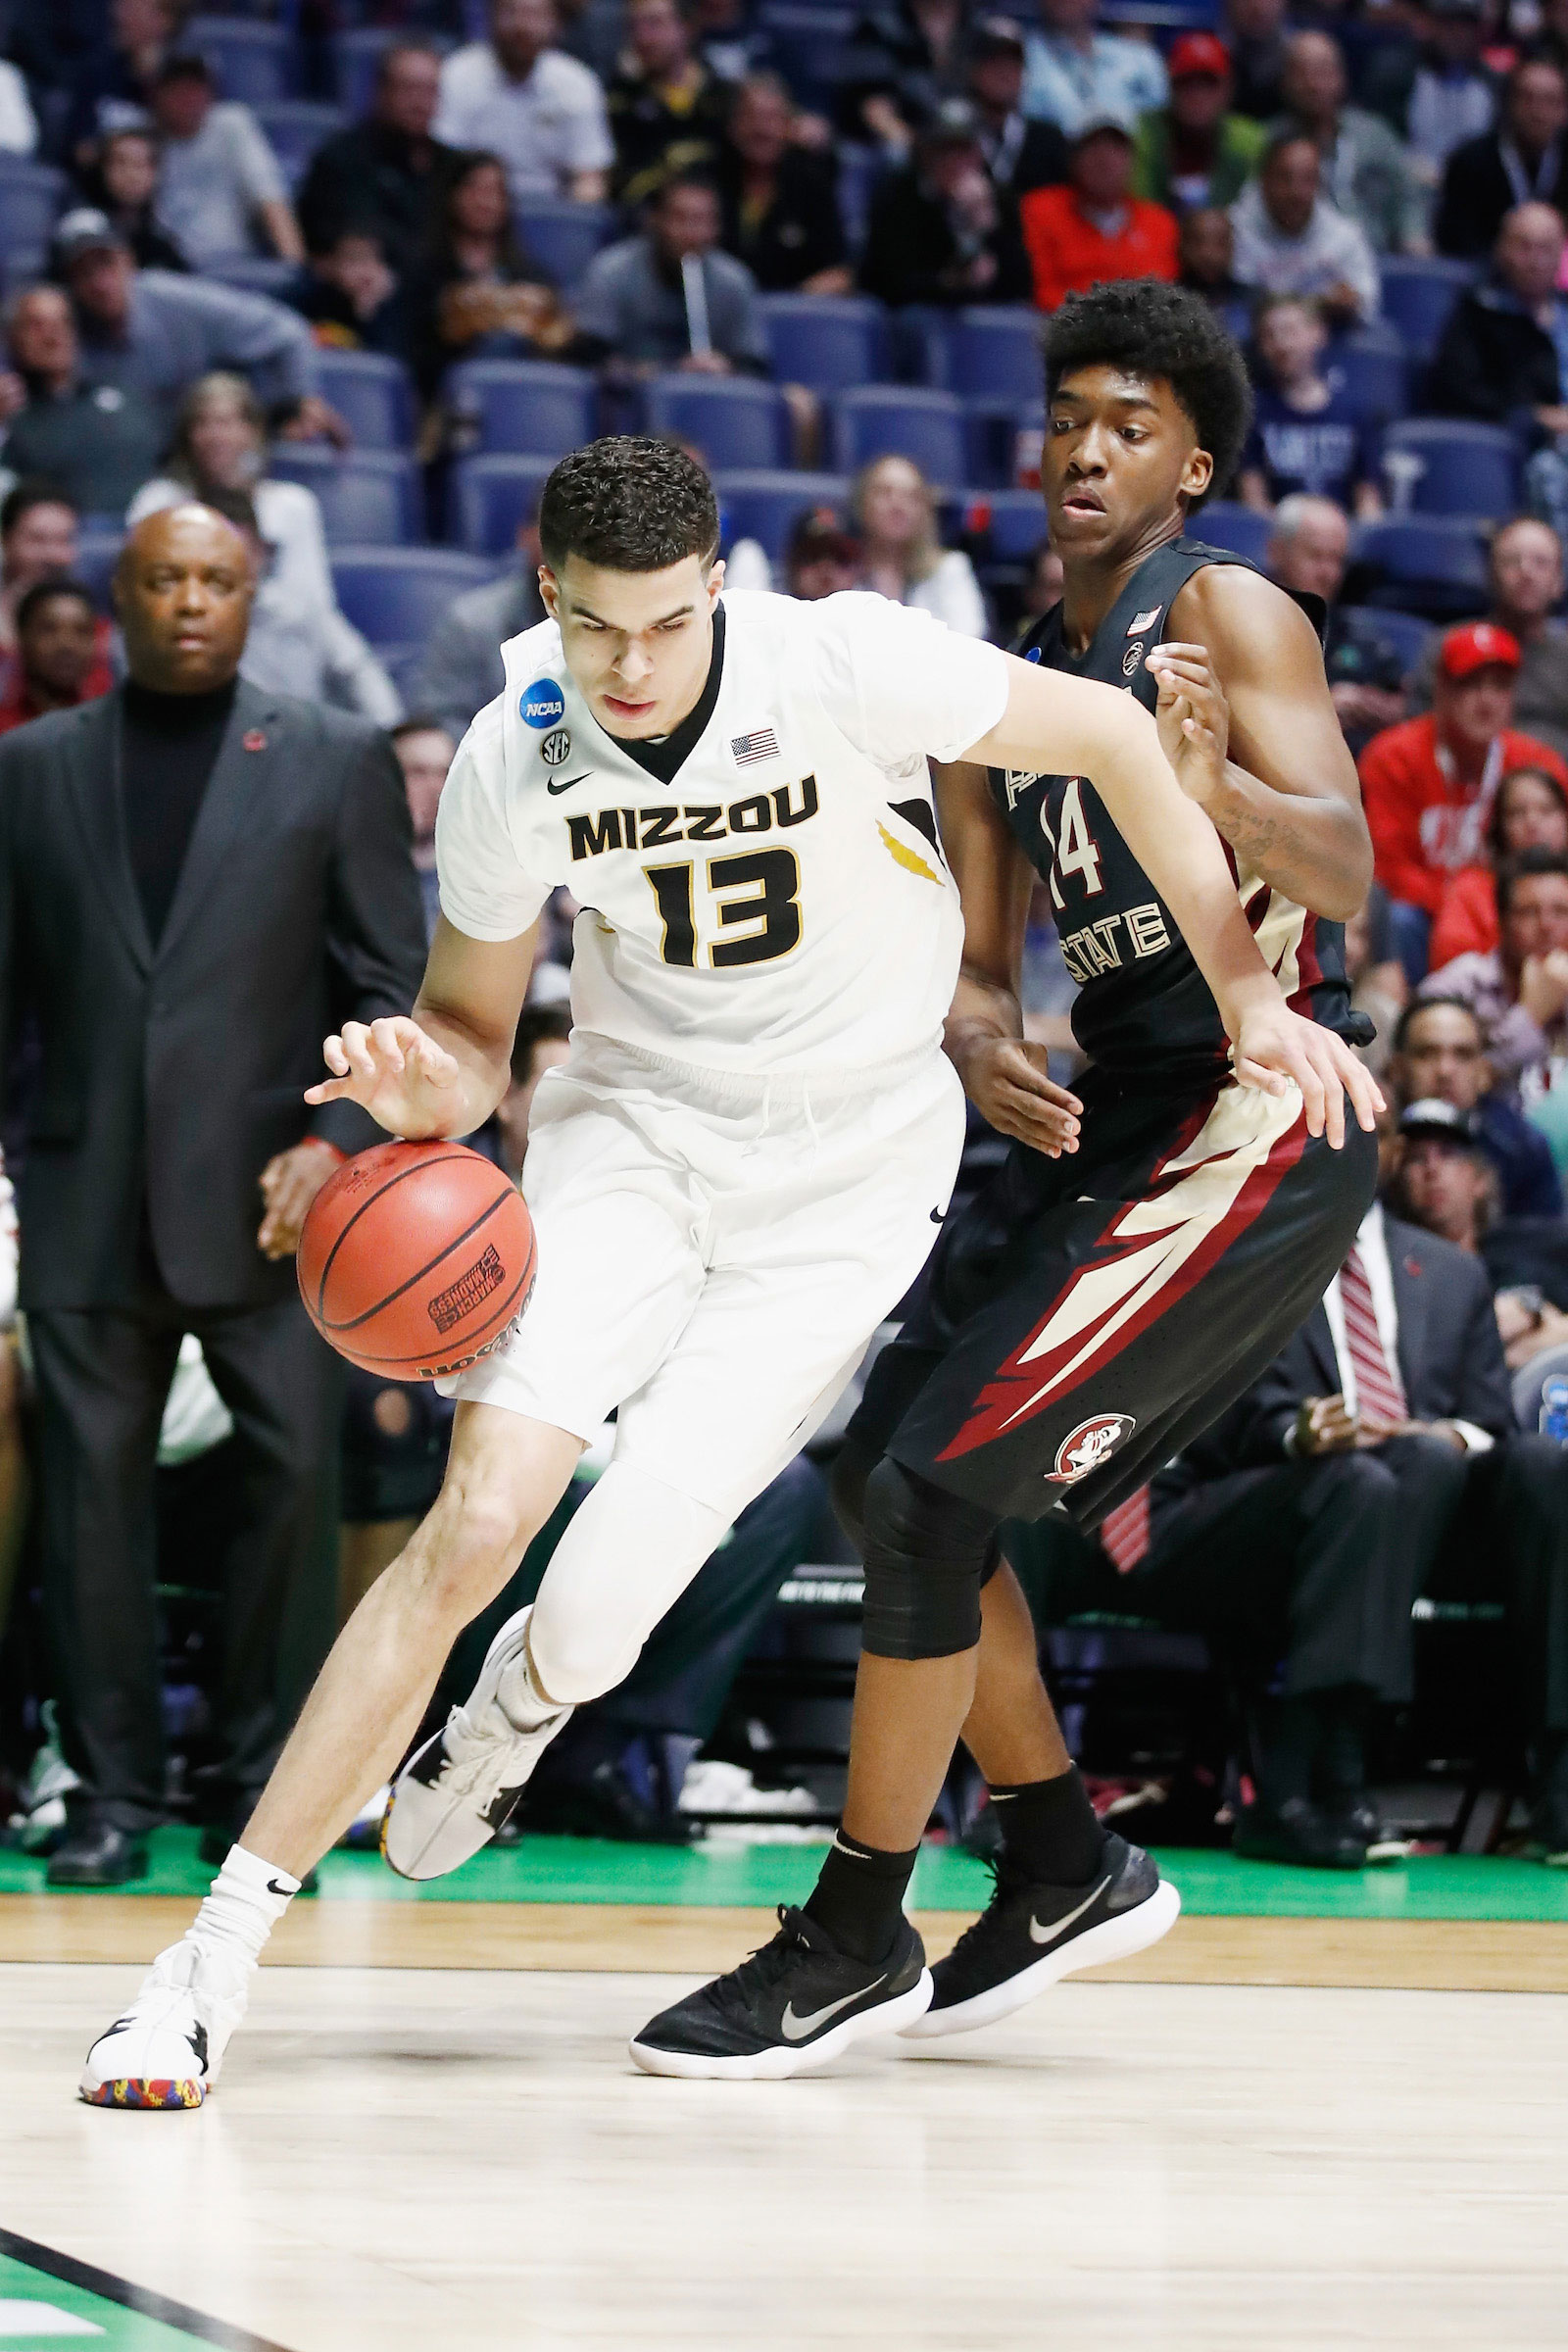 Michael Porter Jr. #13 of the Missouri Tigers drives to the basket against Terance Mann #14 of the Florida State Seminoles during the game in the first round of the 2018 NCAA Men's Basketball Tournament at Bridgestone Arena on March 16, 2018 in Nashville, Tennessee.